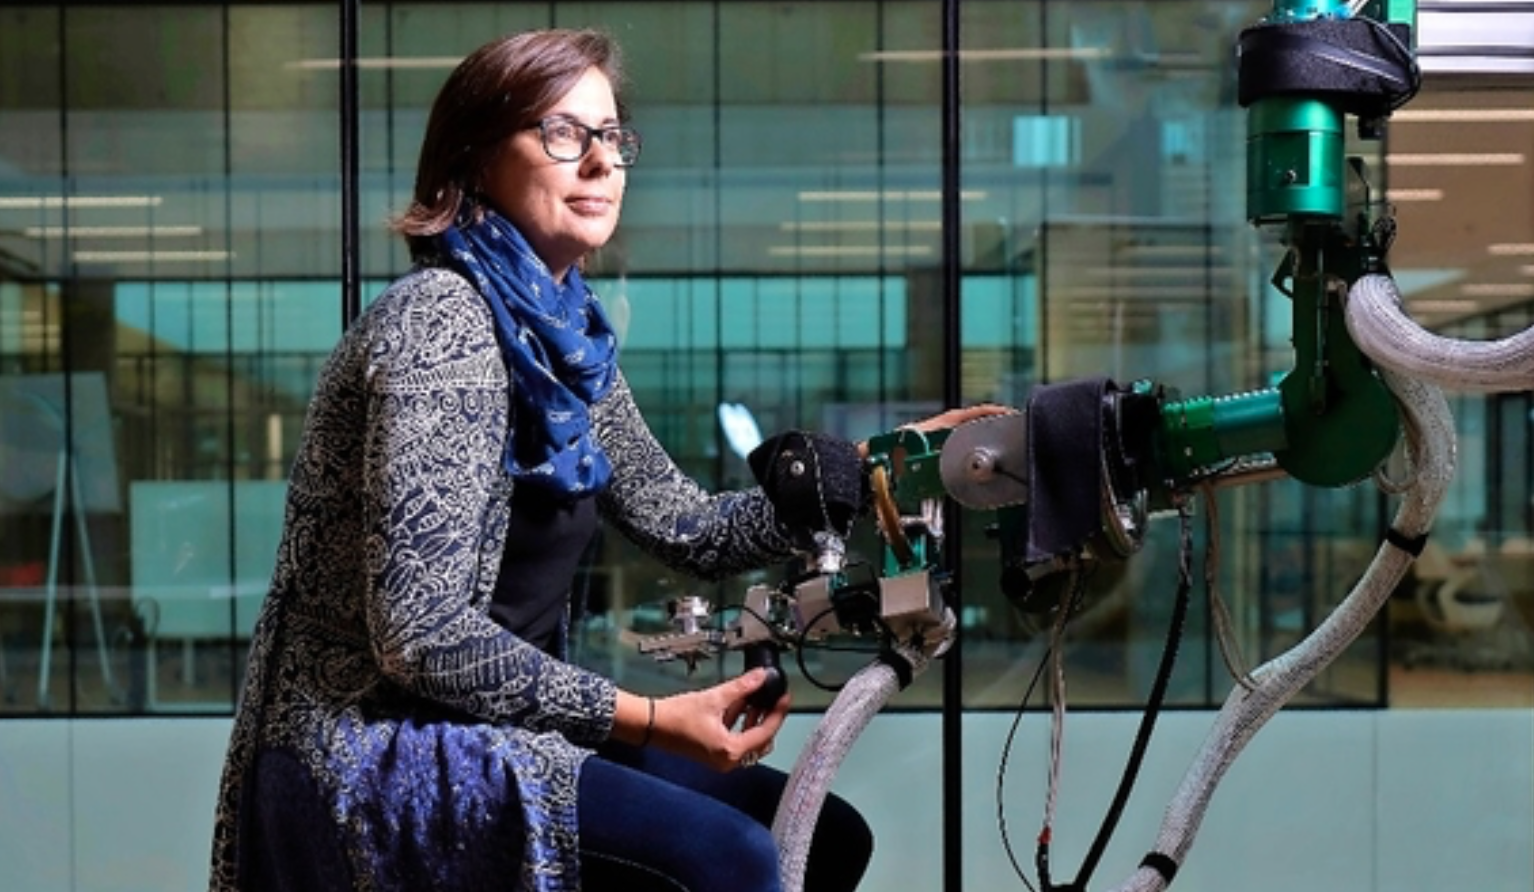 Laura Marchal-Crespo with the rehabilitation robot ARMin (photo: Adrian Moser)